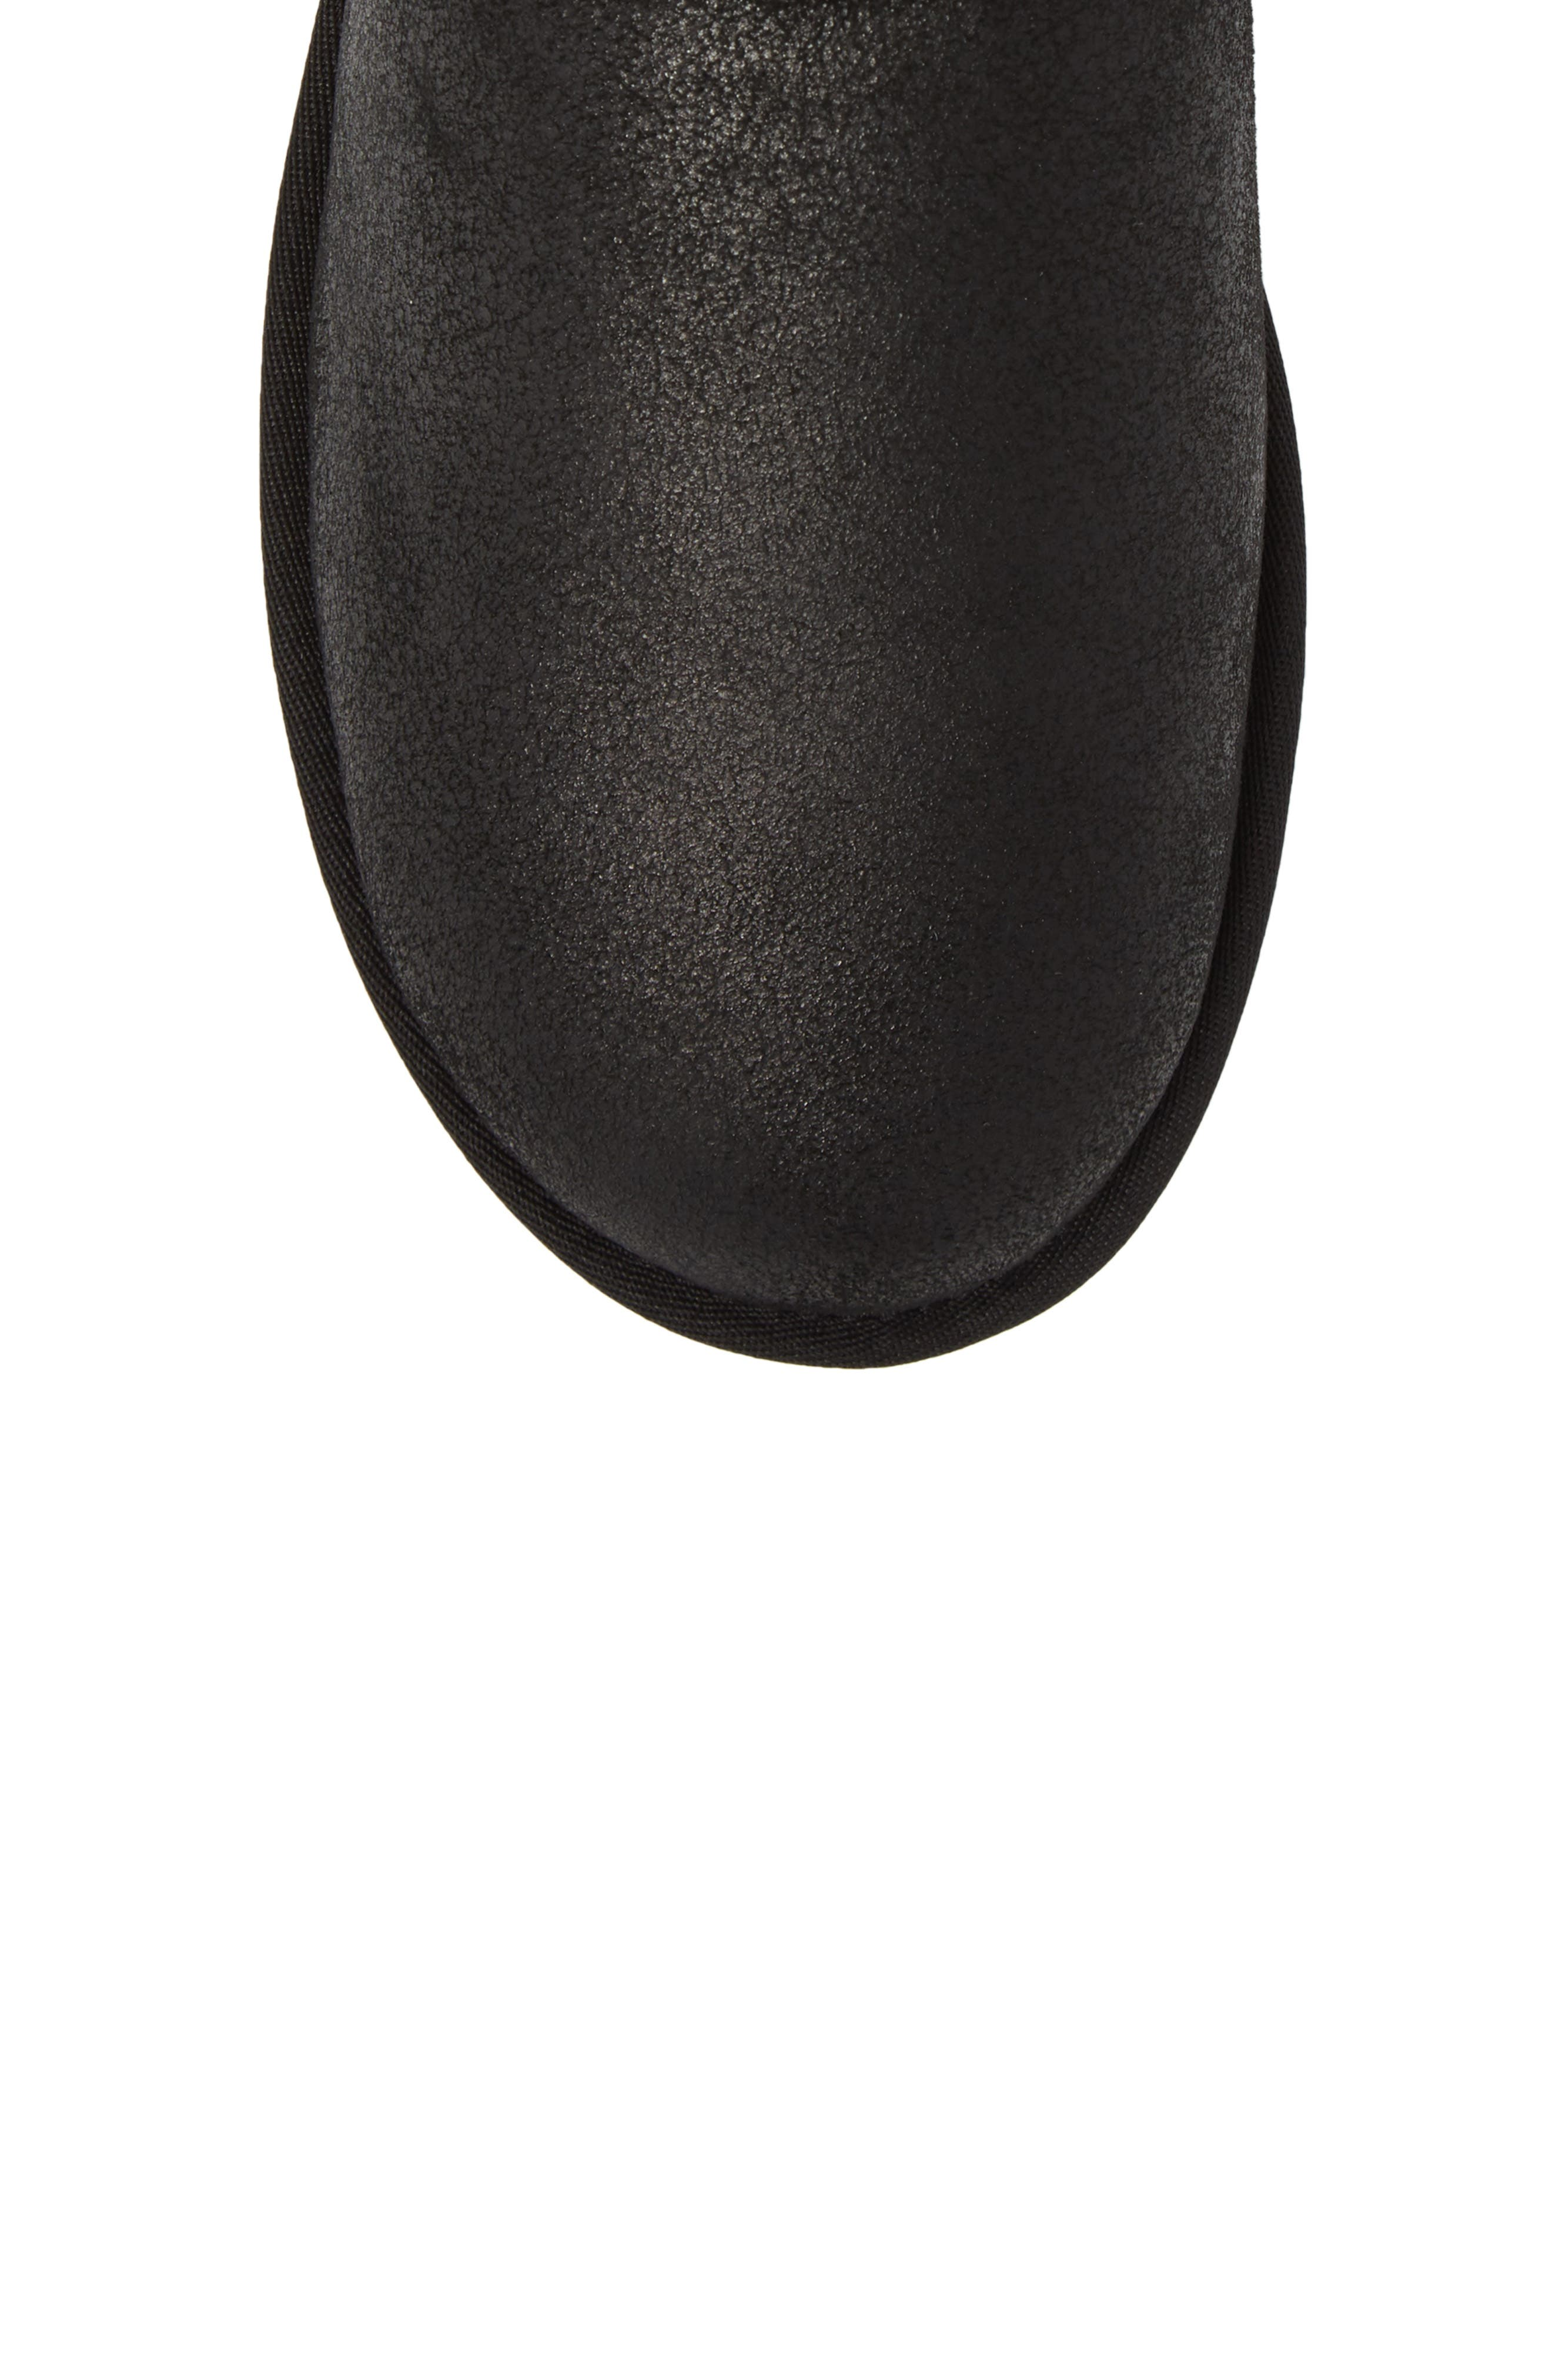 UGG<SUP>®</SUP>, Classic Mini Bomber Boot with Genuine Shearling or UGGpure<sup>™</sup> Lining, Alternate thumbnail 5, color, BOMBER JACKET BLACK